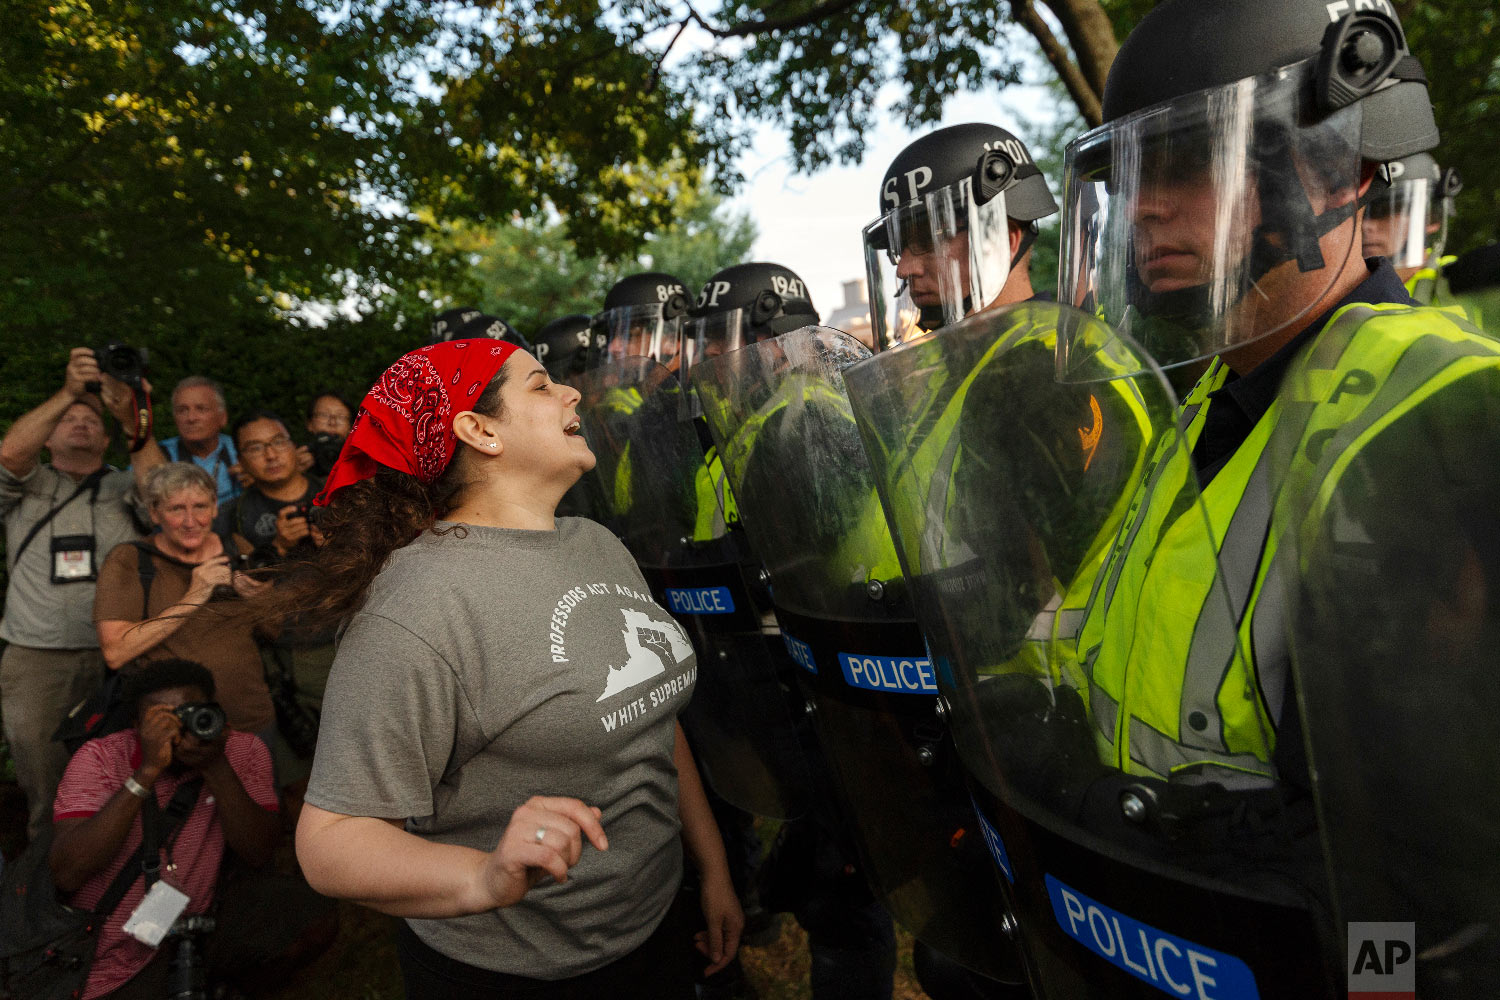 """Emily Filler attempts to dissuade state police from advancing on students rallying on the grounds of the University of Virginia on the anniversary of the """"Unite the Right"""" rally in Charlottesville, Va. Saturday, Aug. 11, 2018.  (Craig Hudson/Charleston Gazette-Mail via AP)"""